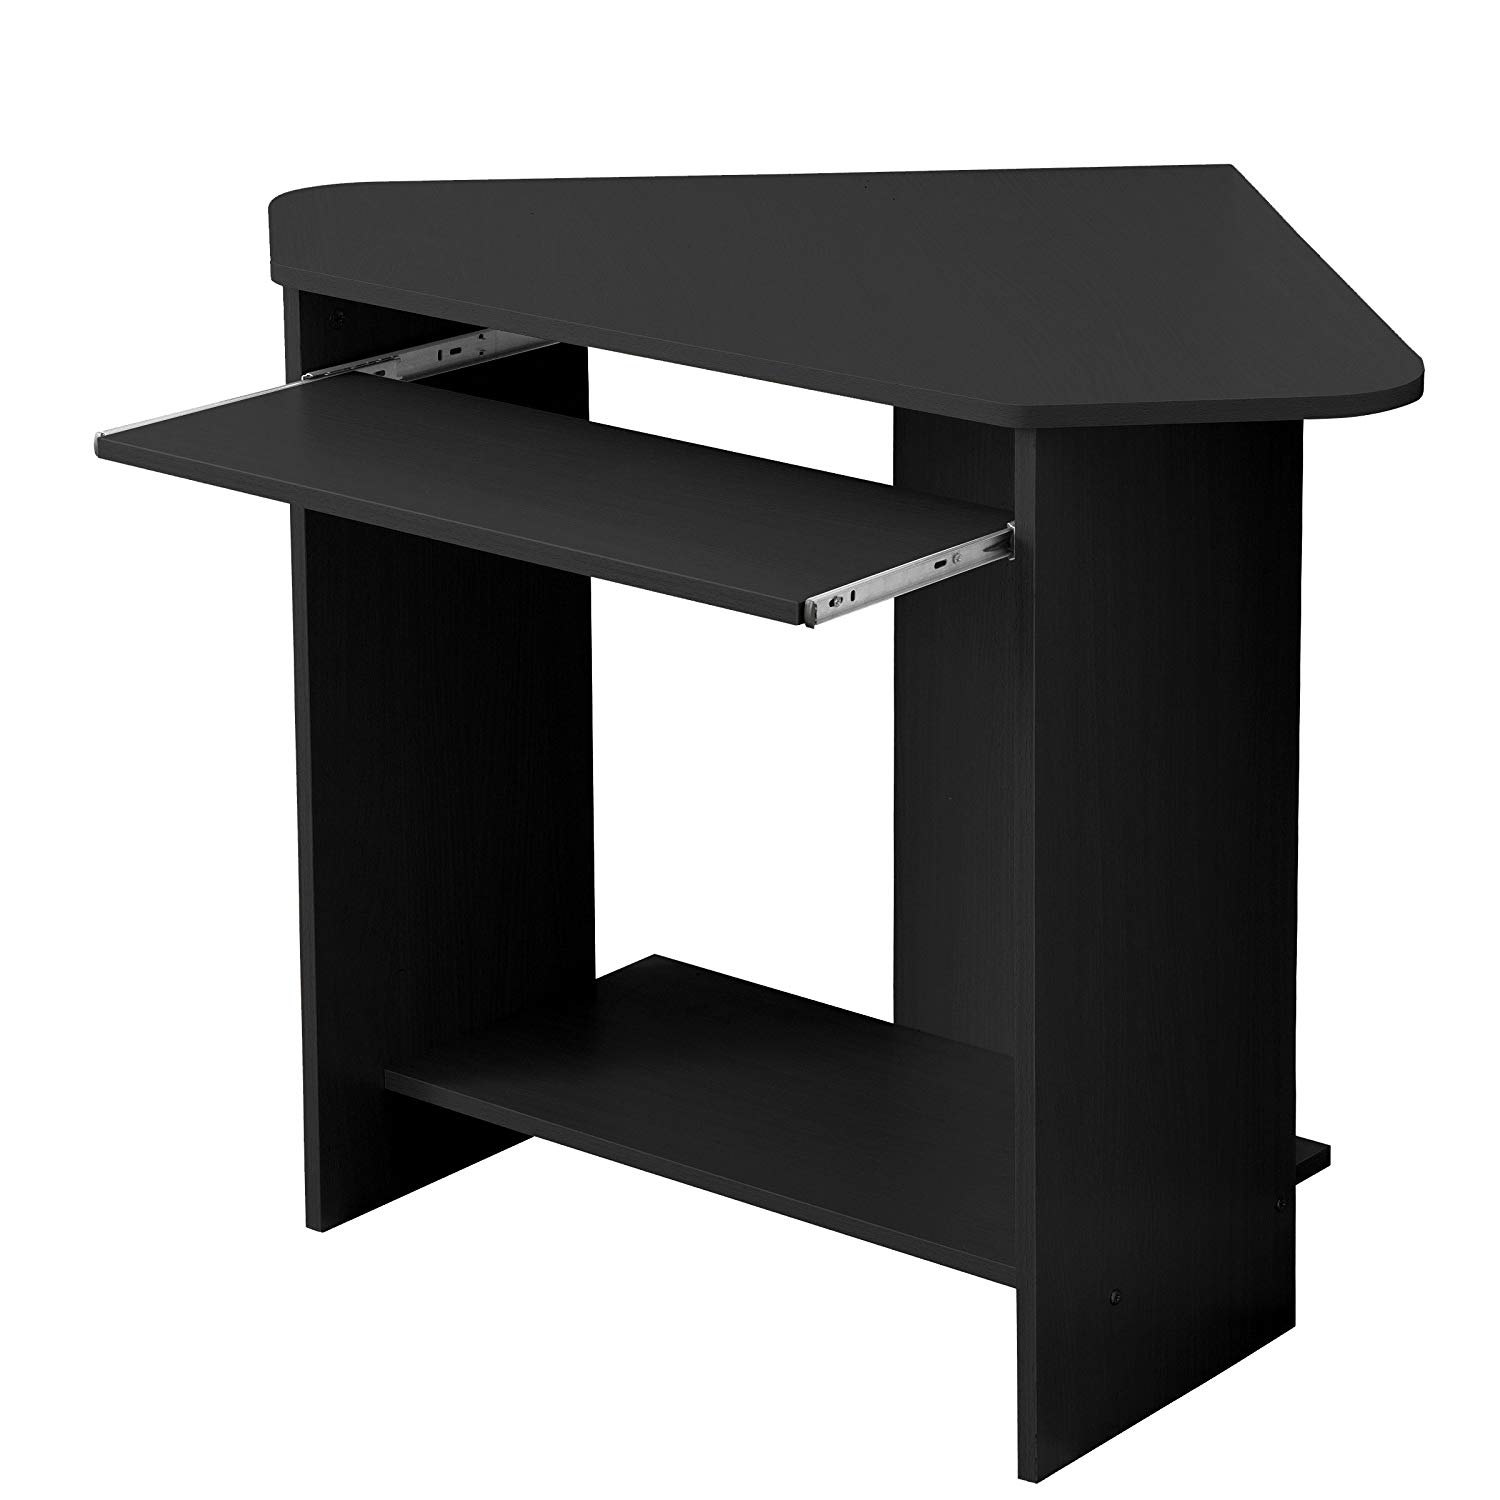 Home Office Compact Corner Desk, Black